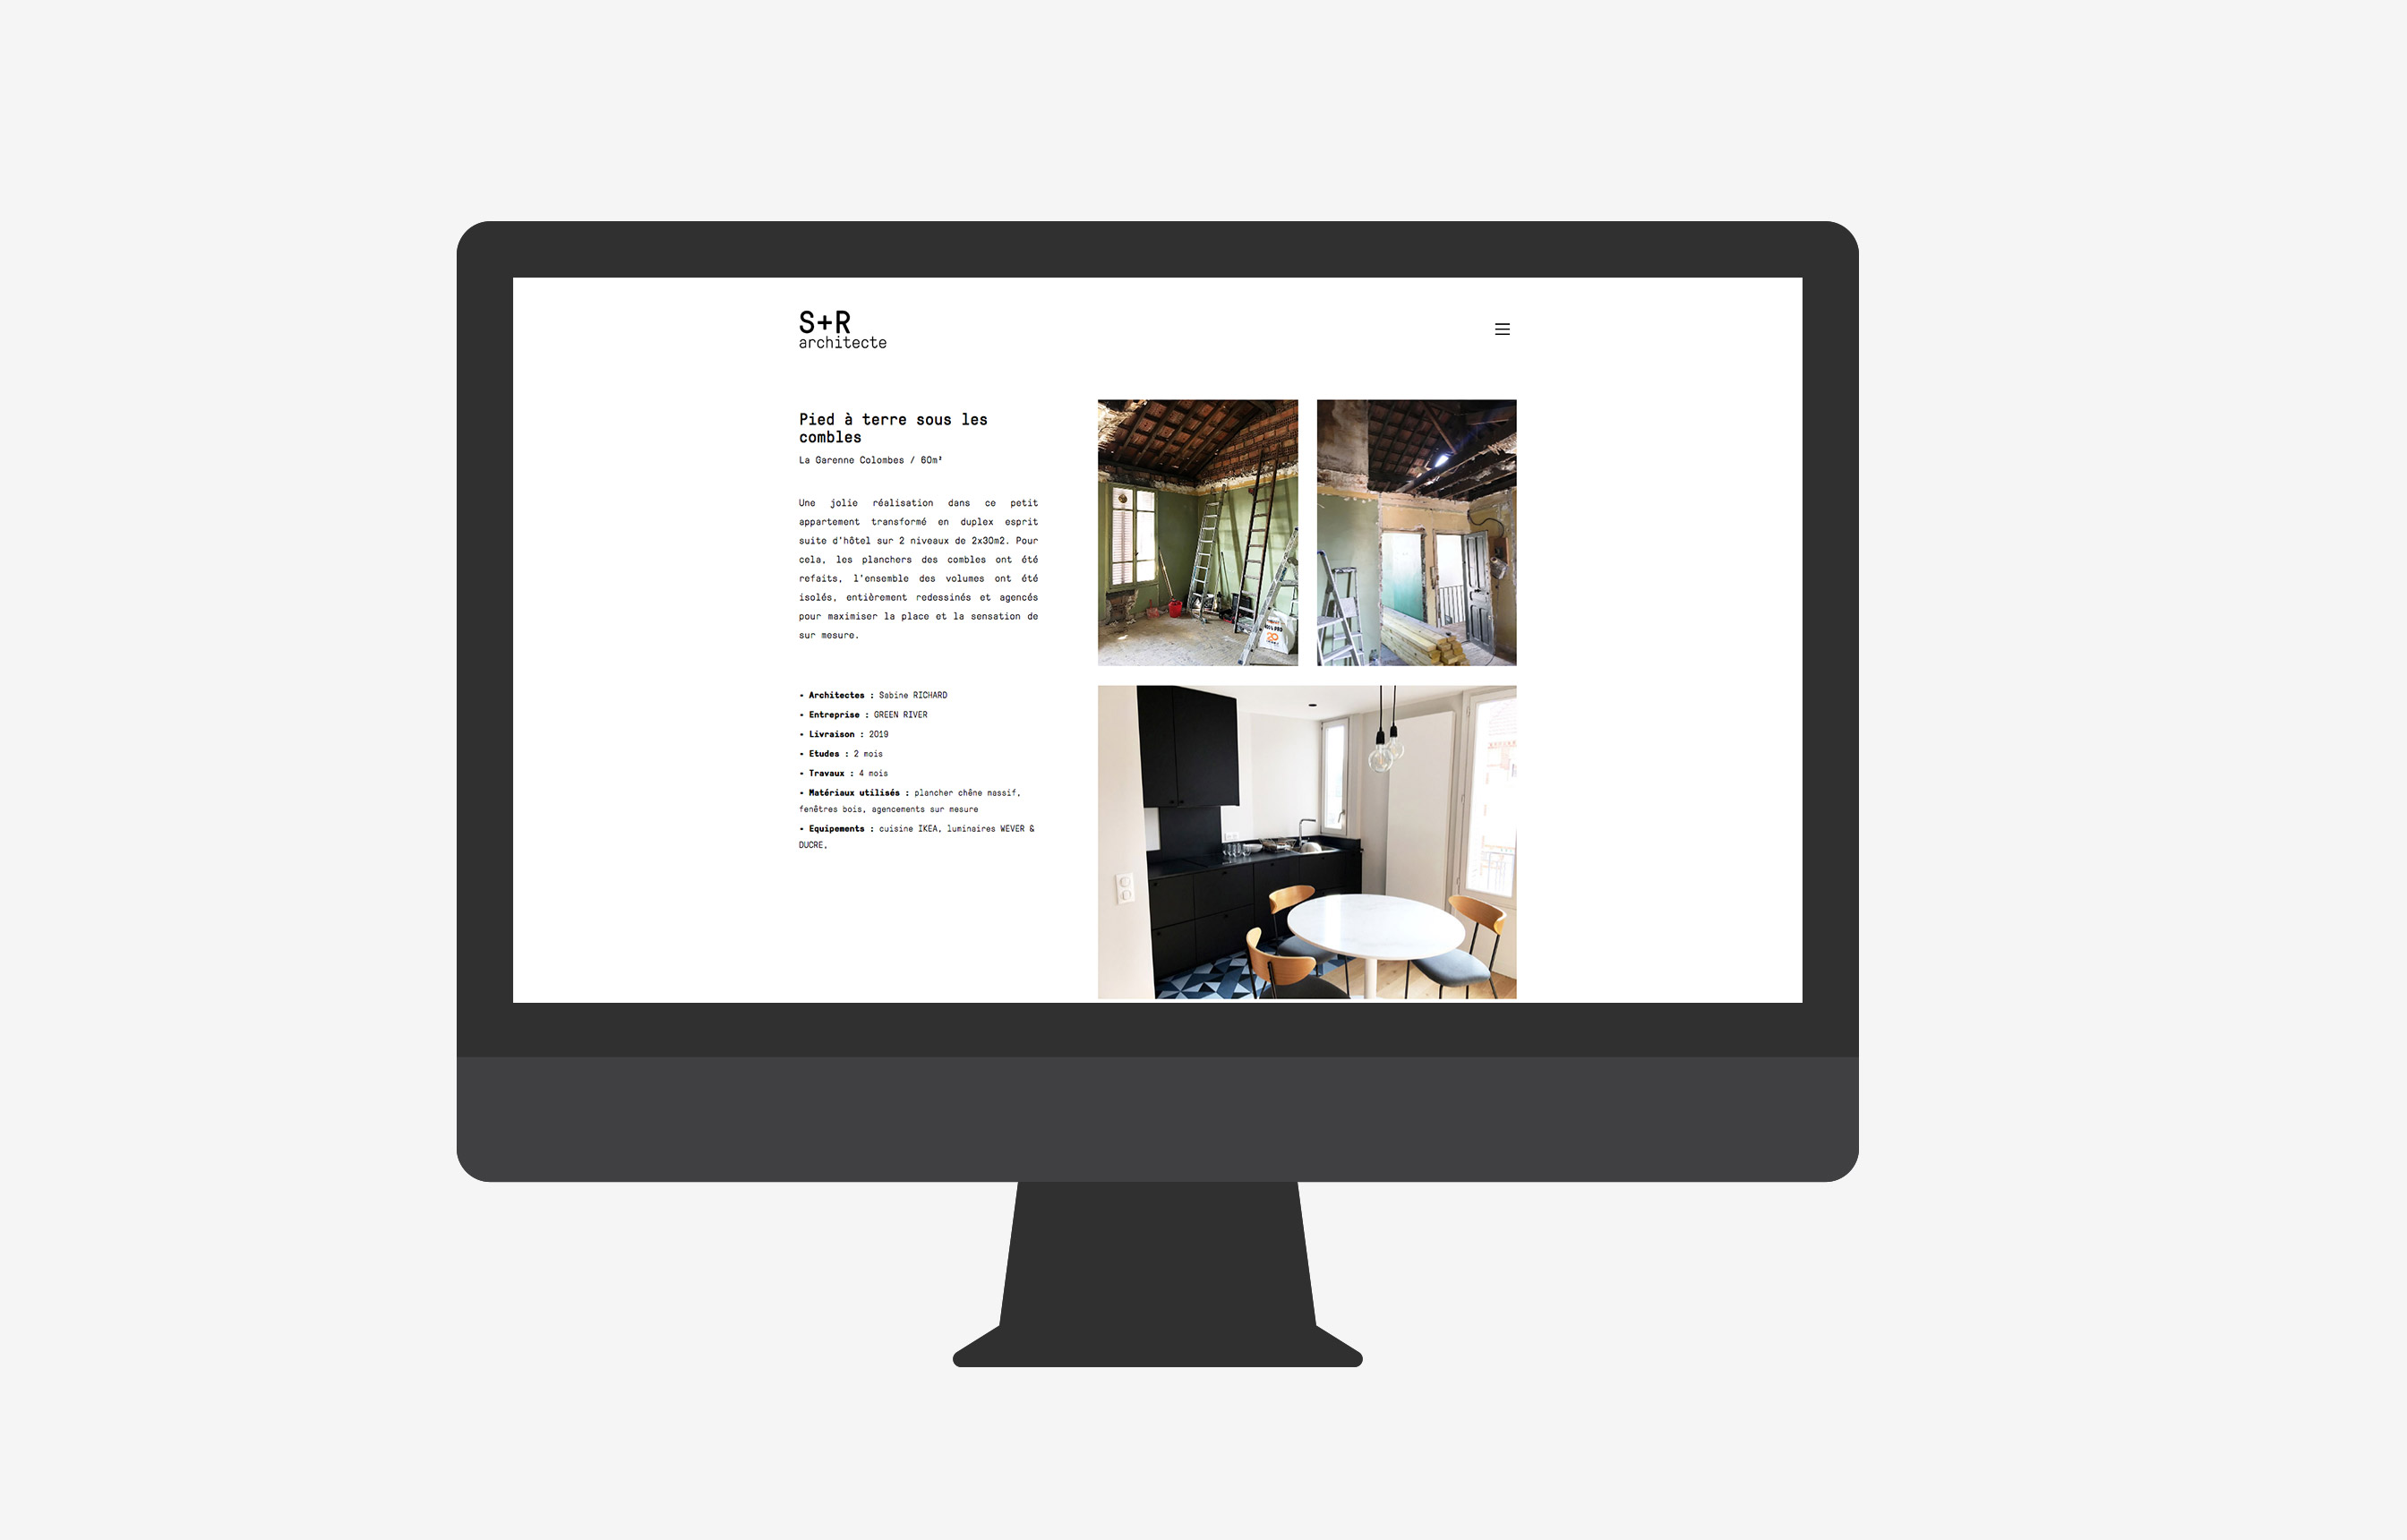 03-sr-architecte-pikteo-webdesign-graphic-design-freelance-paris-bruxelles-londres